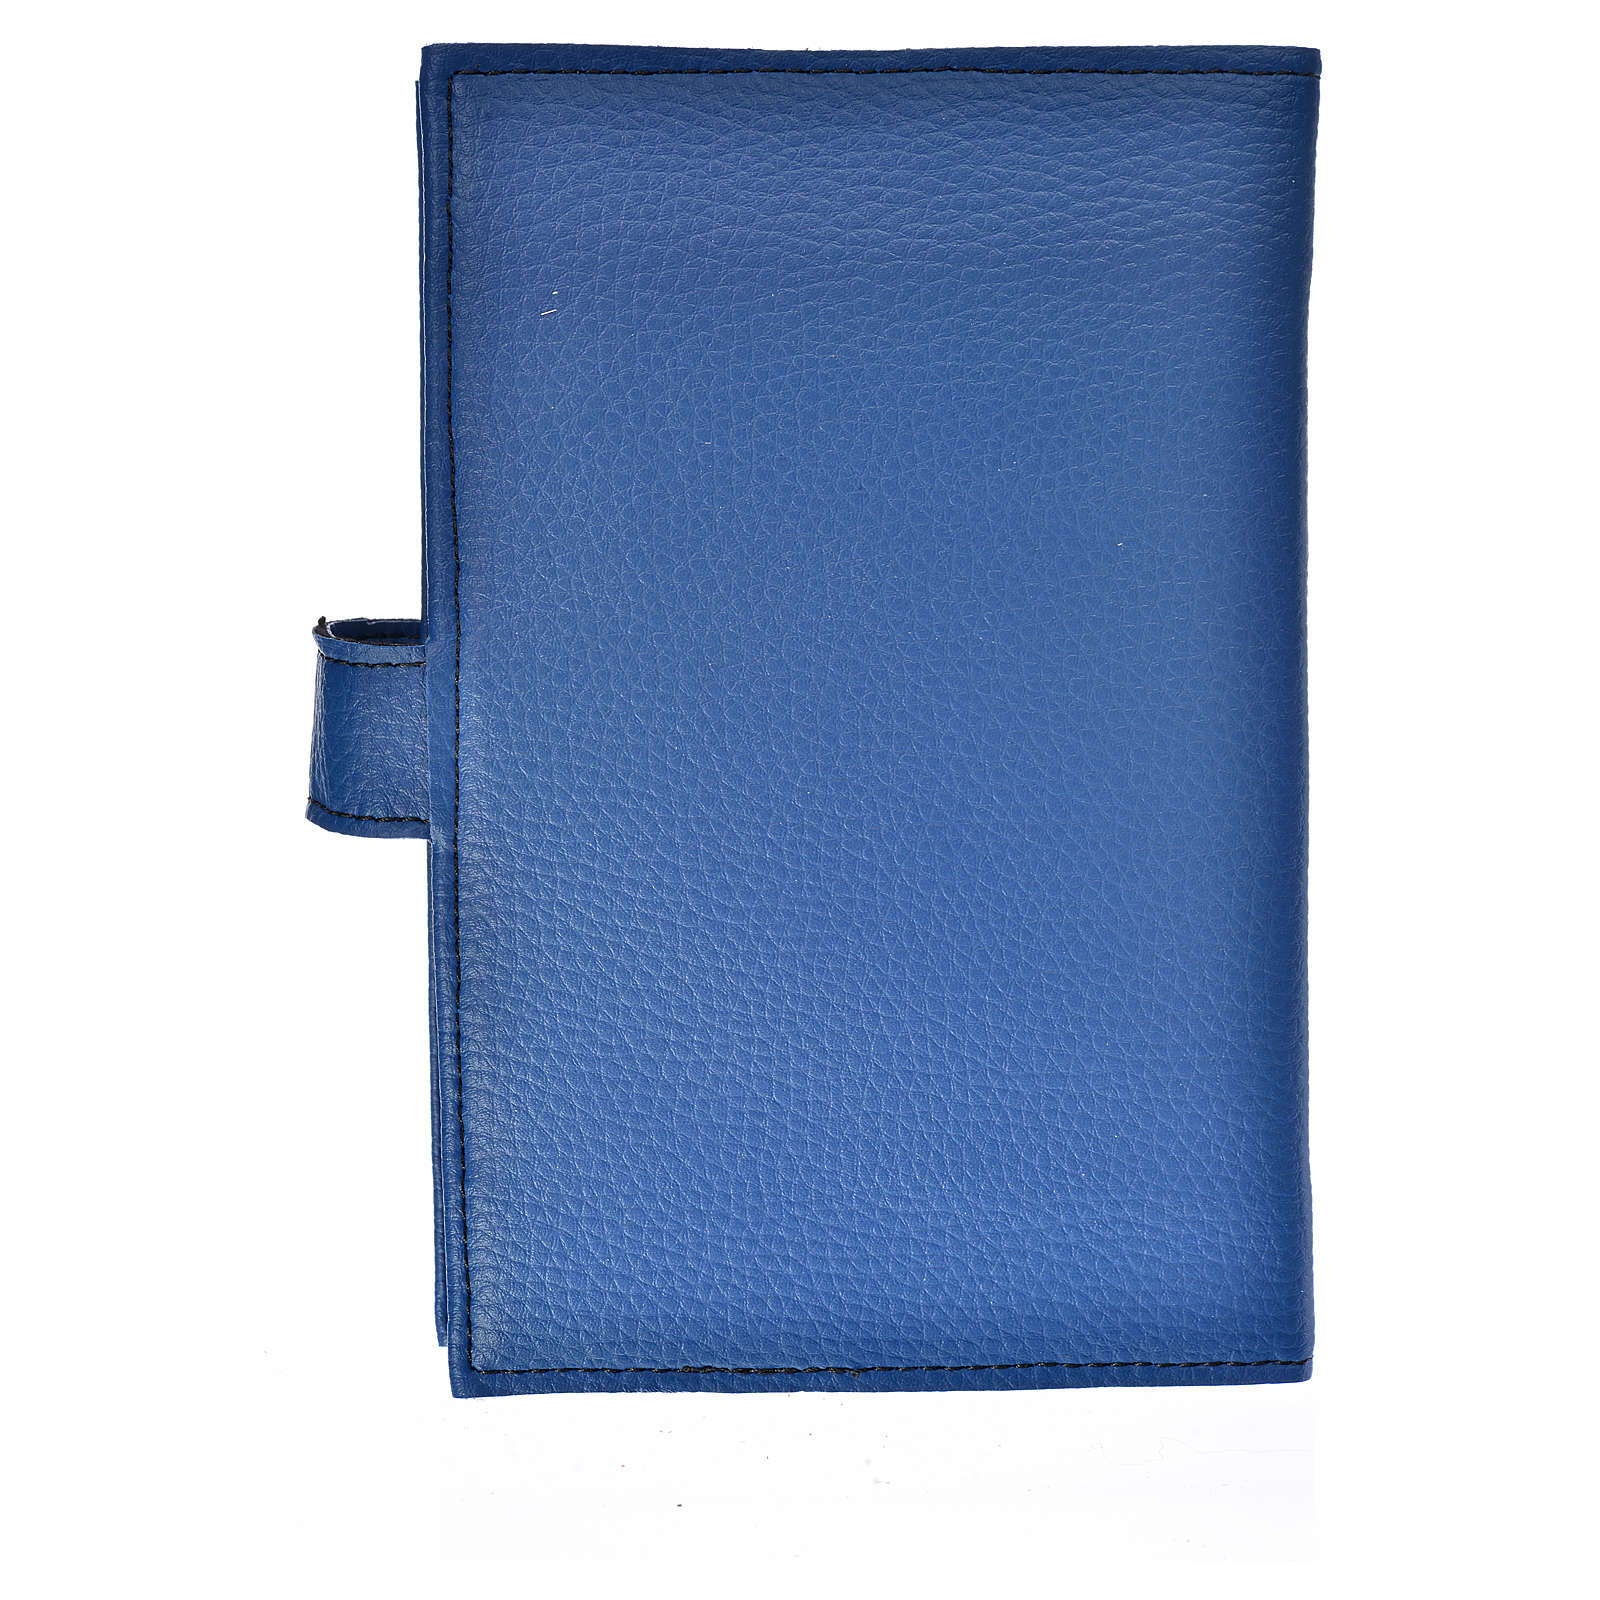 Blue leather imitation New Jerusalem bible READER EDITION cover in English with image of Our Lady 4